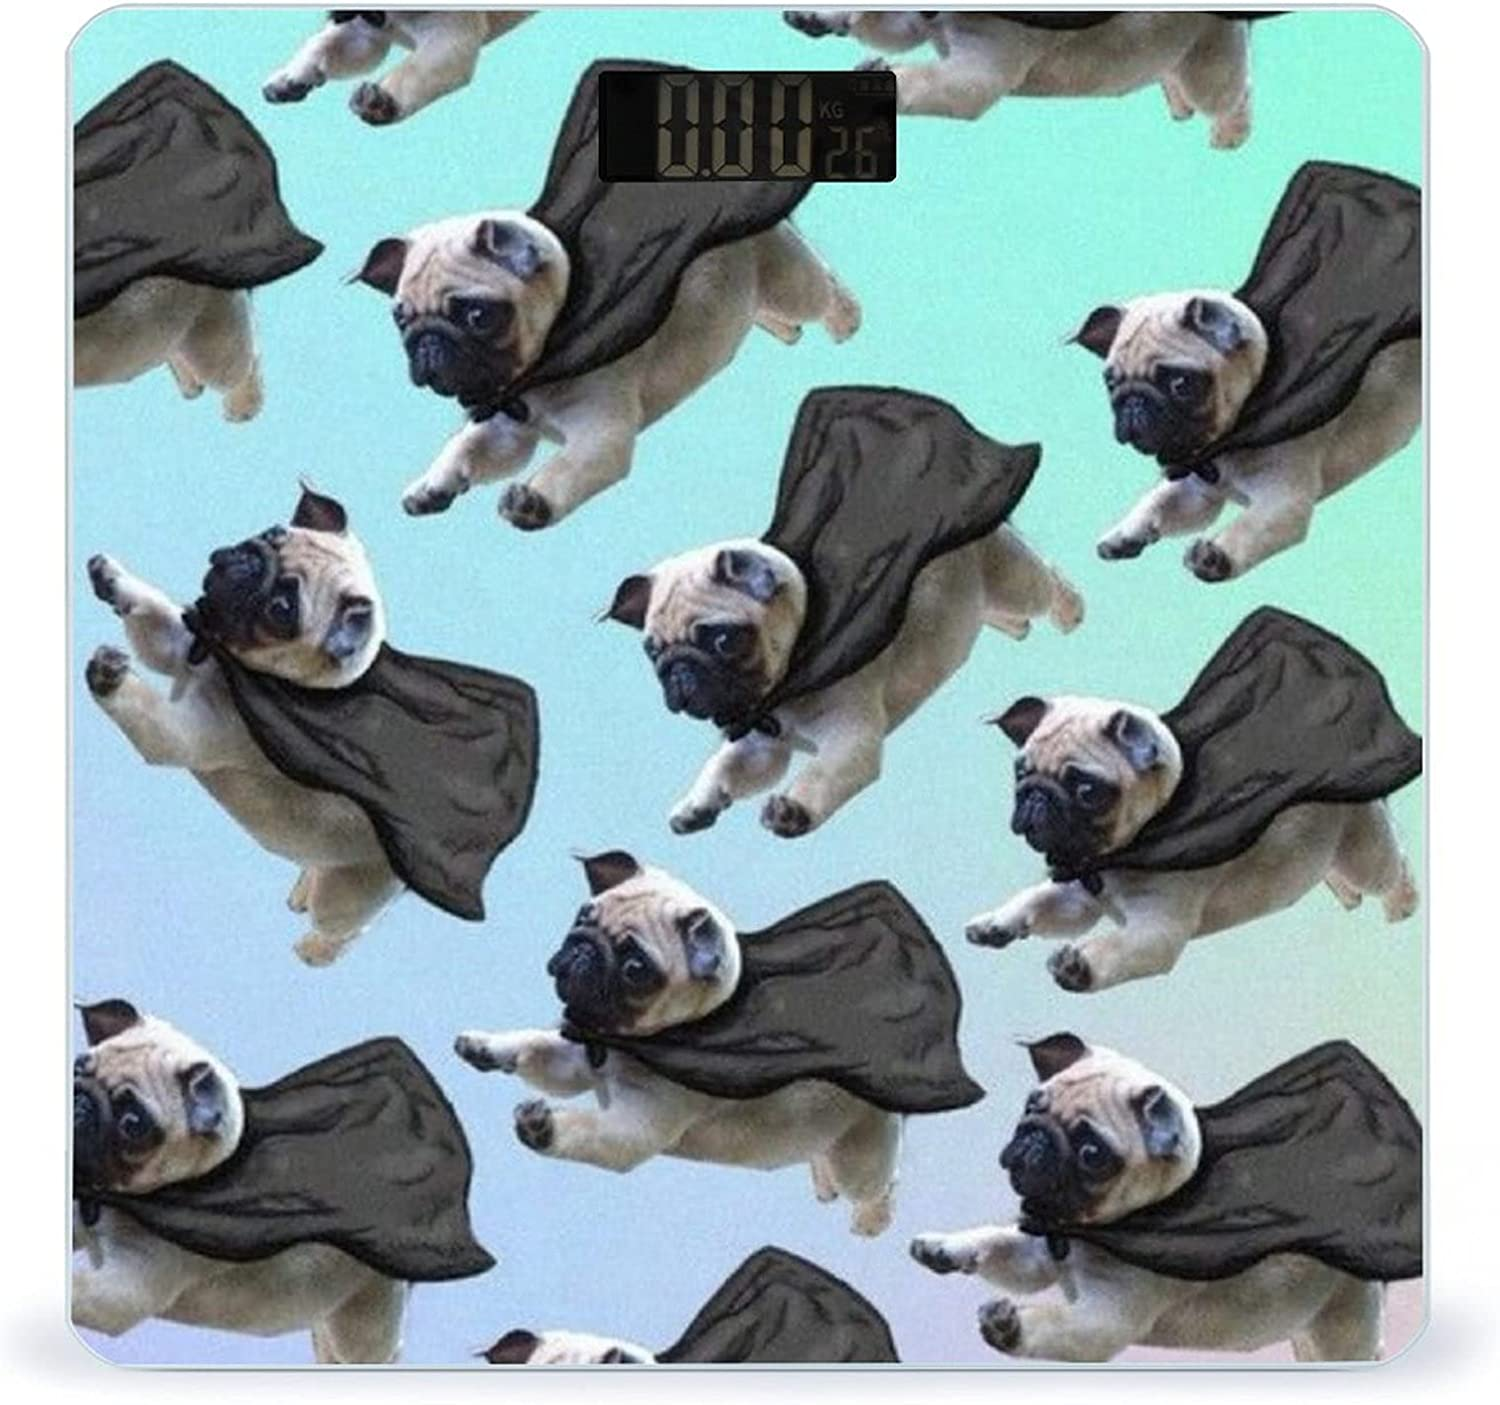 CHUFZSD Fly Pug quality assurance Highly Accurate Fitness Scale Weight Digit Smart Max 90% OFF